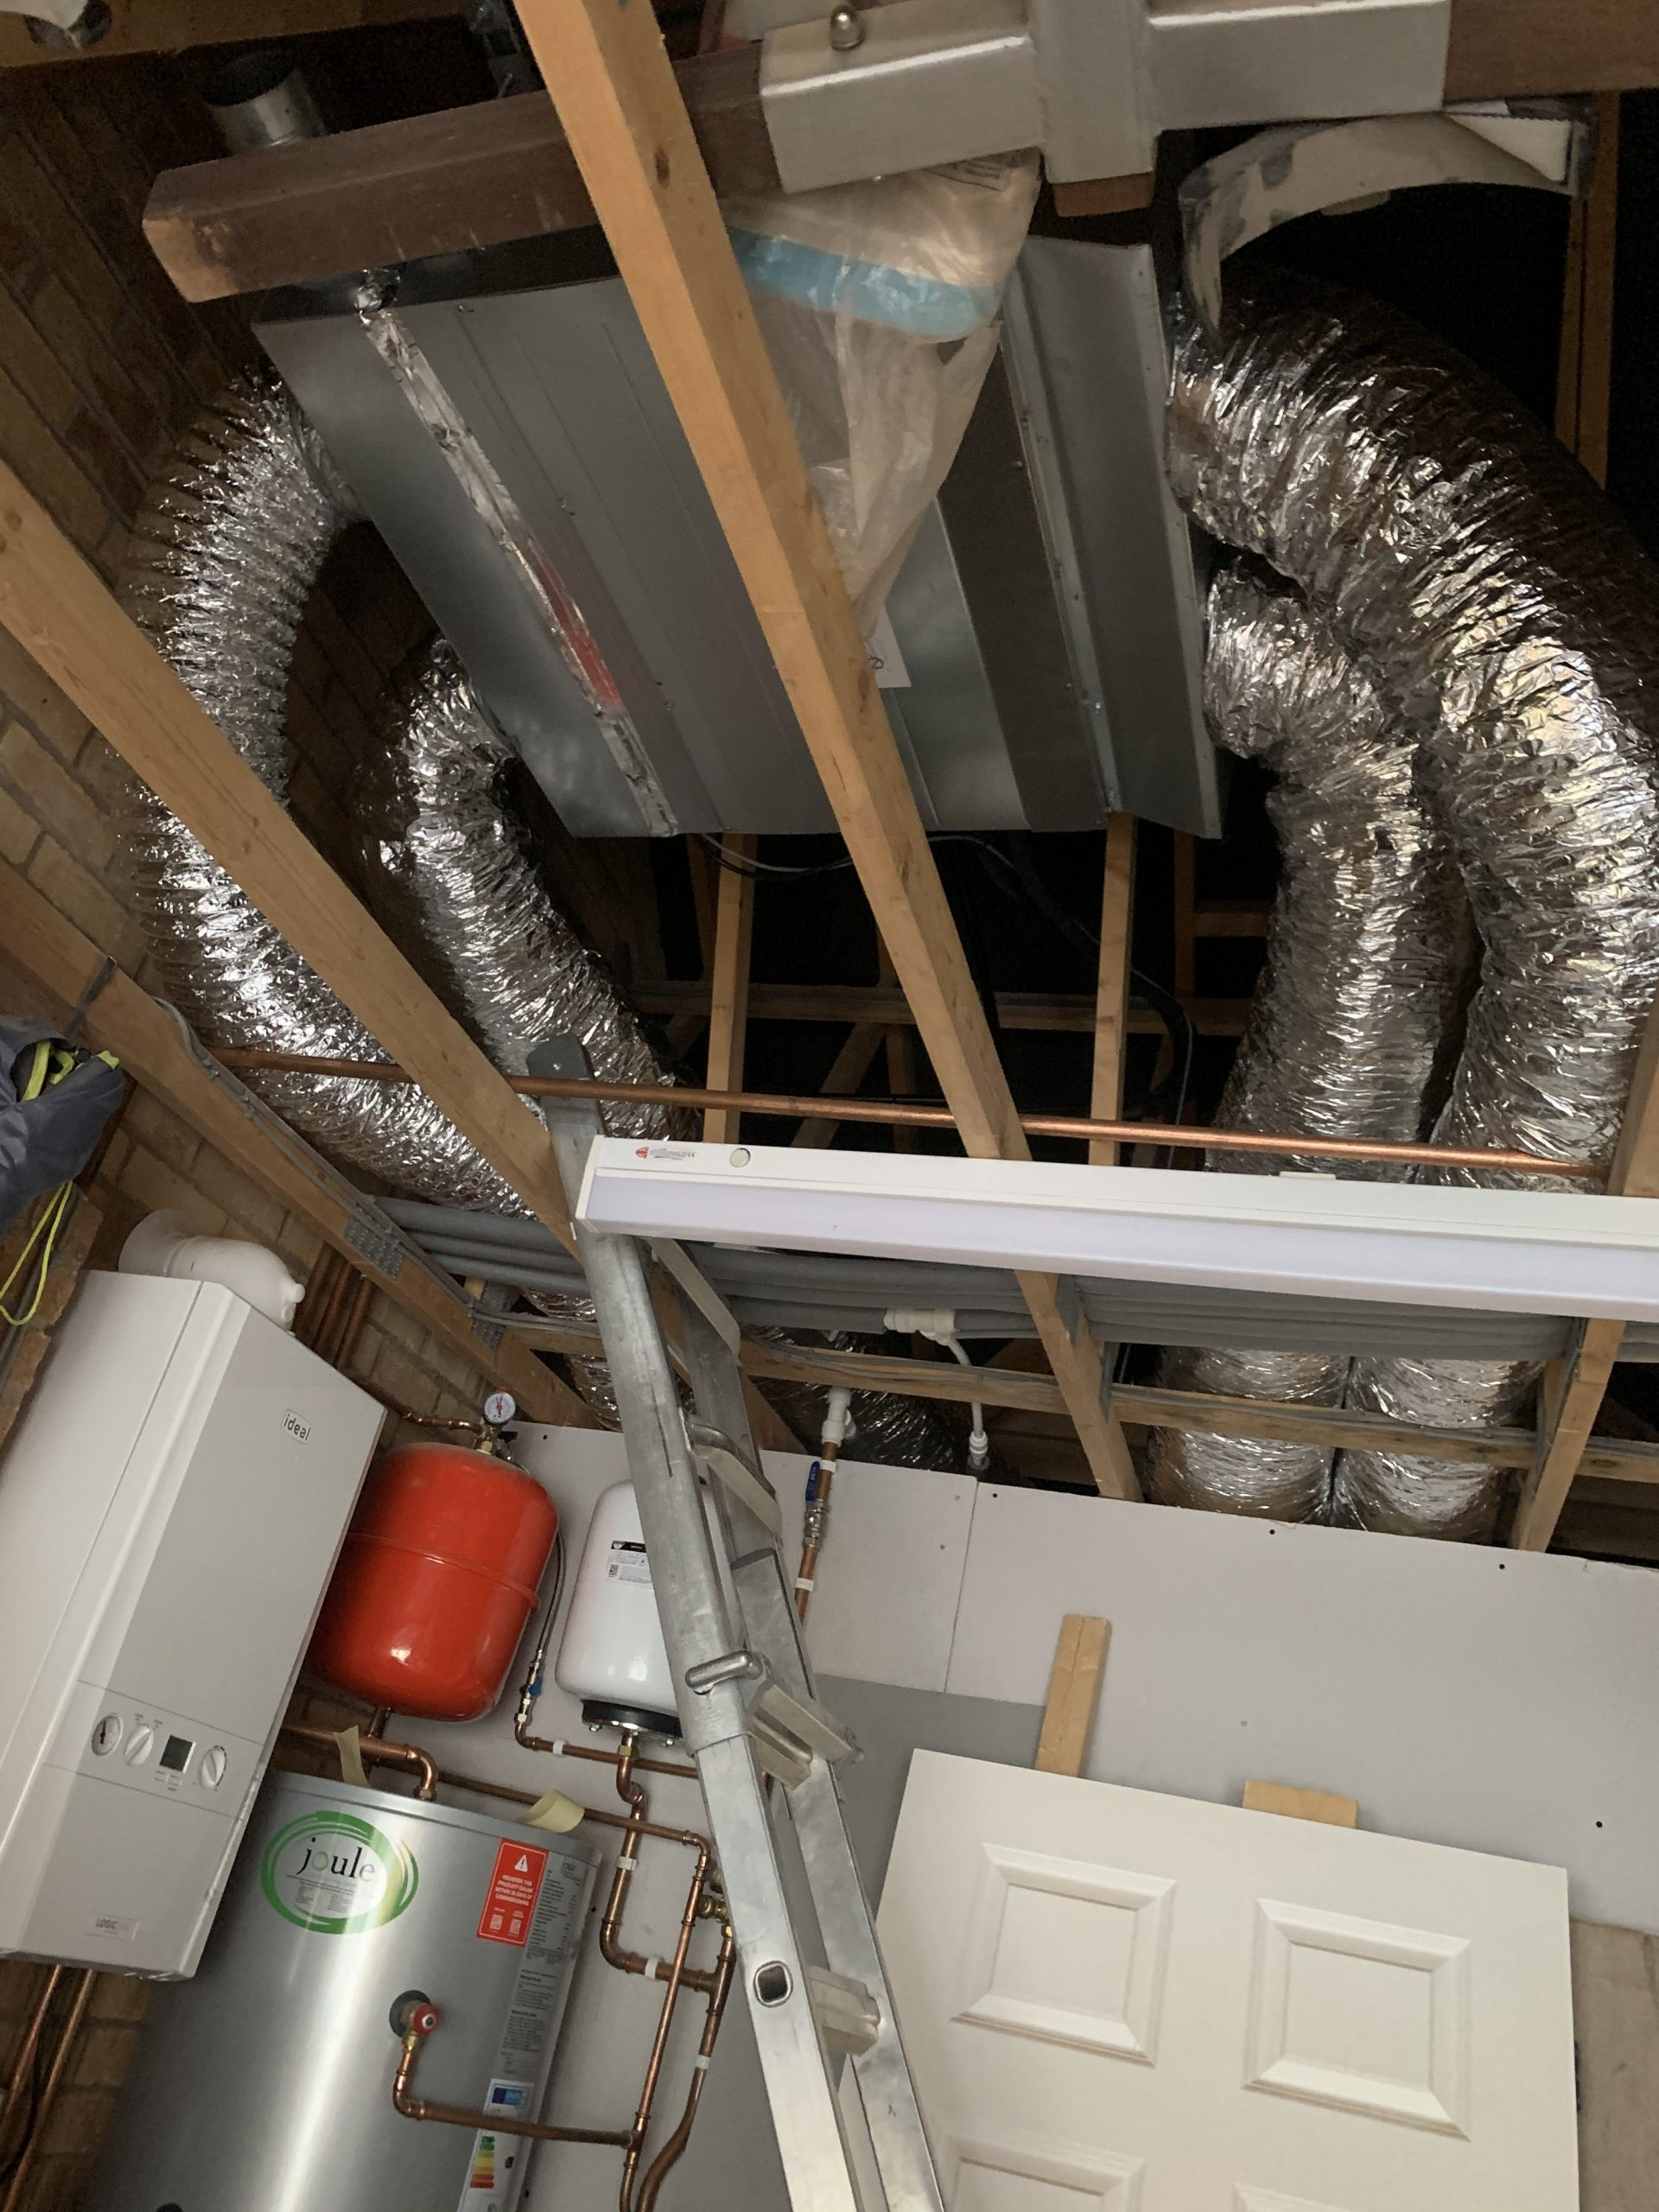 Ducted install